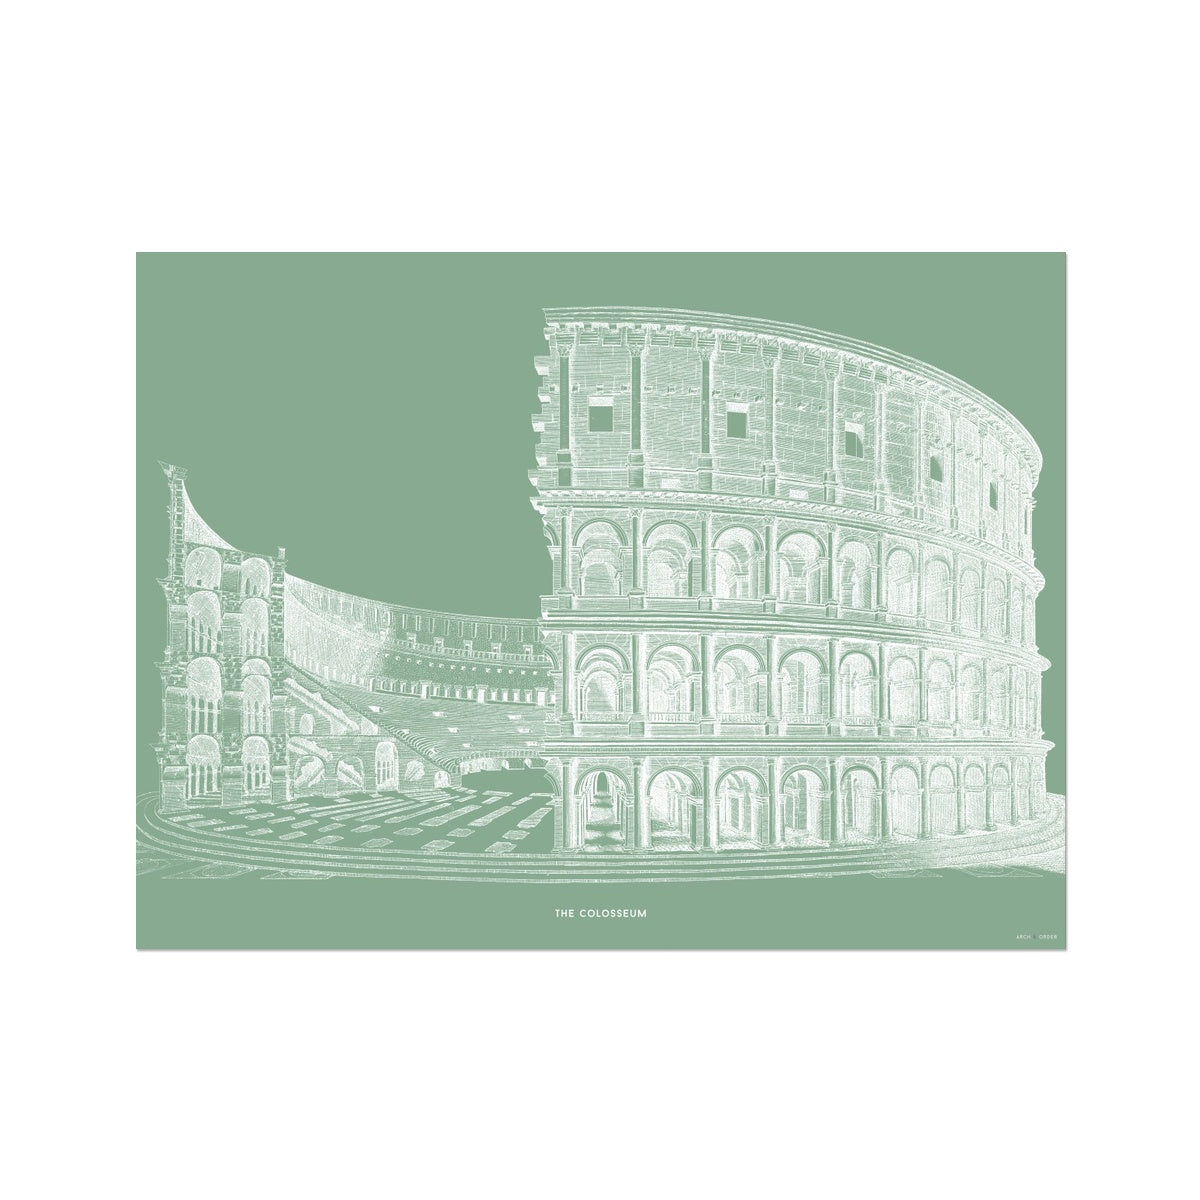 The Colosseum - Cross Section - Green -  Etching Paper Print